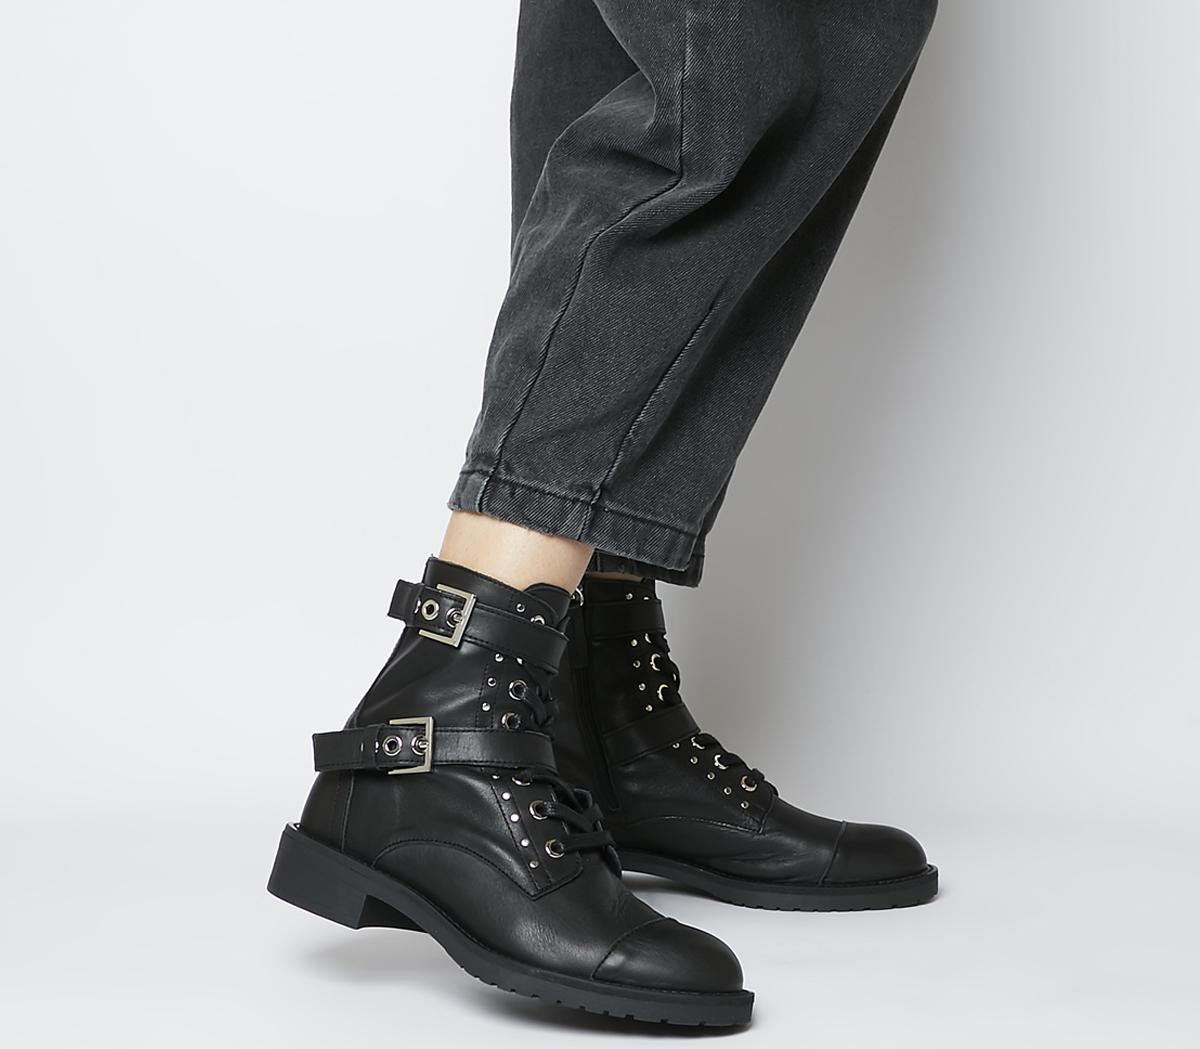 Accomplice Lace Up Buckle Boots